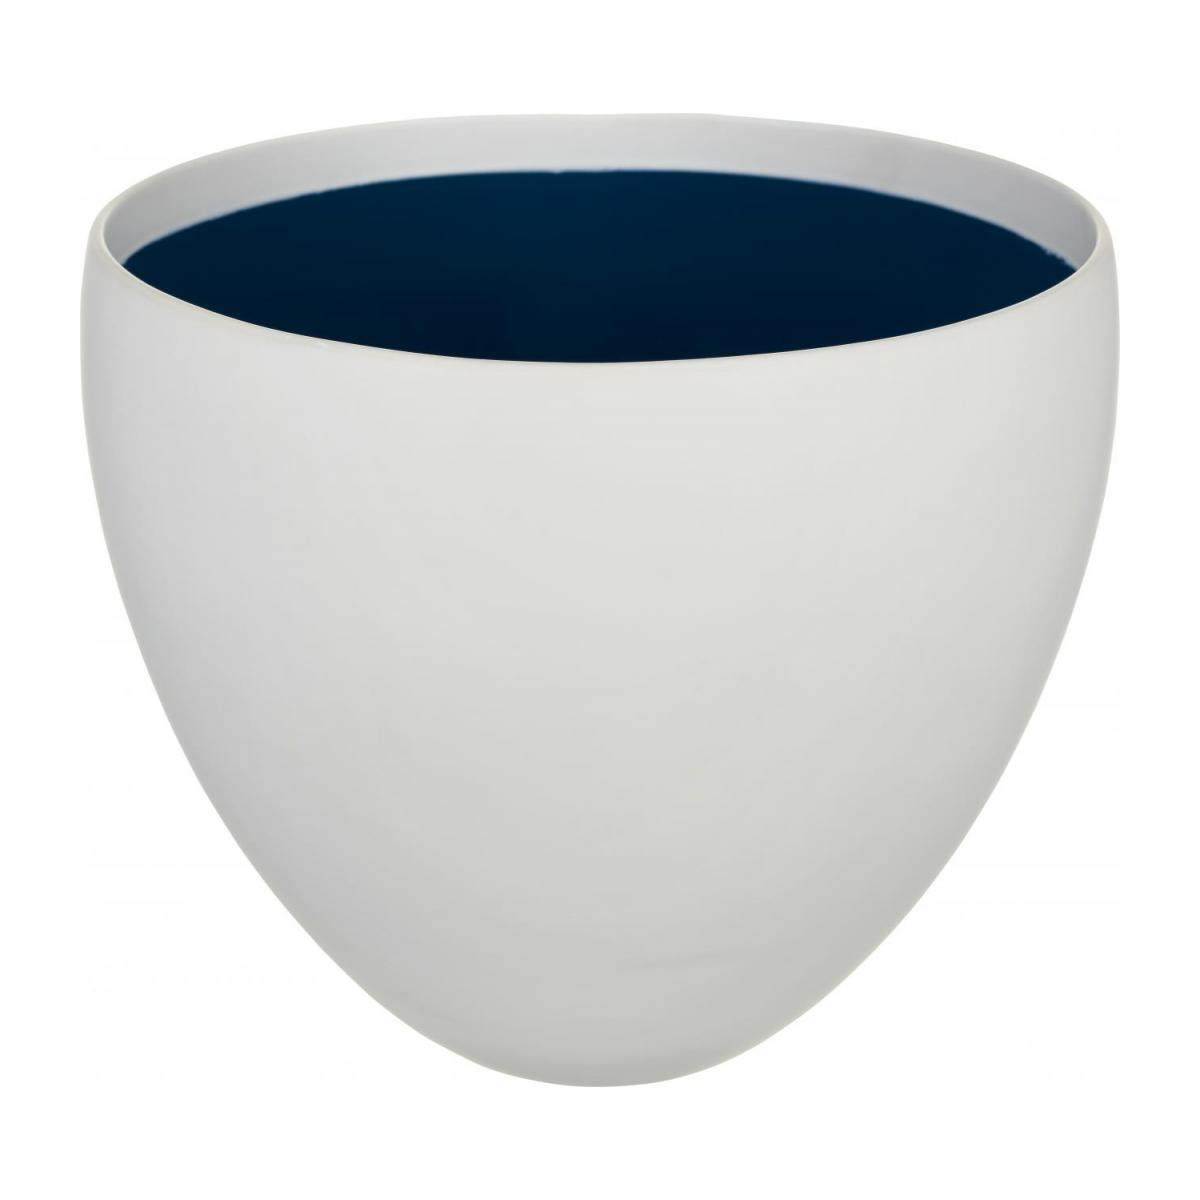 Stoneware Planter White with Blue Inside L n°1